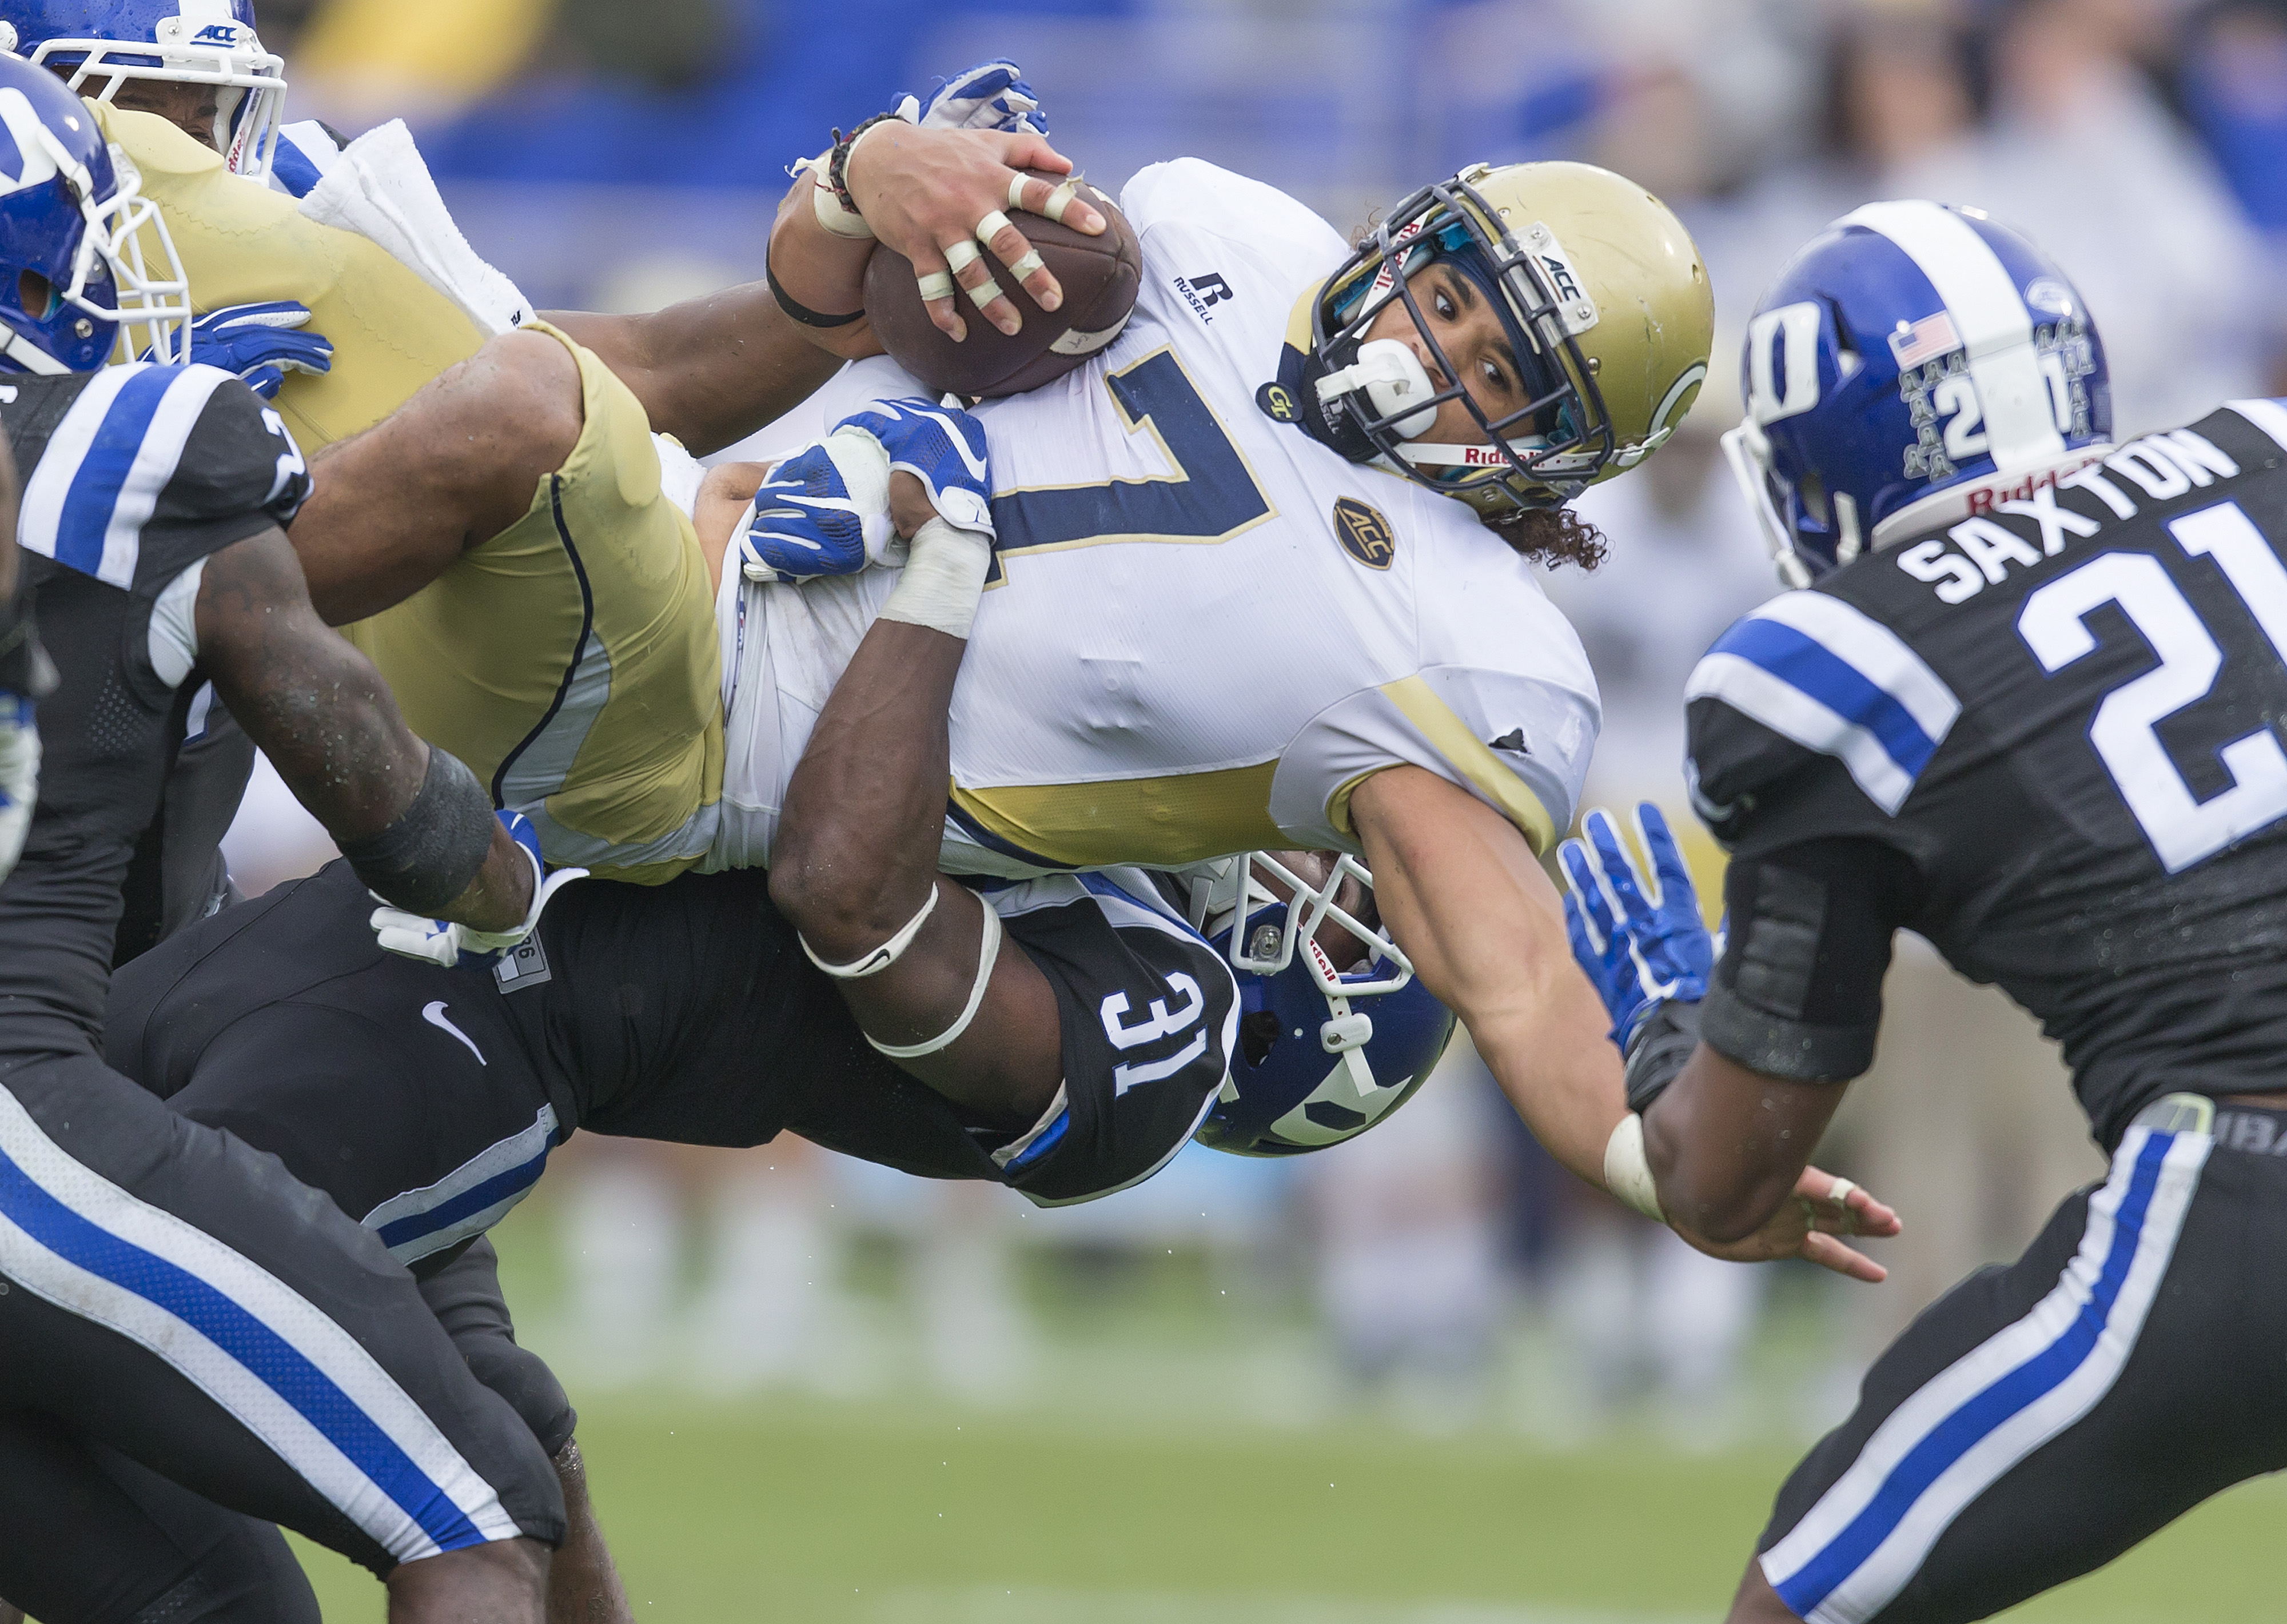 FILE - In this Sept. 26, 2015 file photo, Georgia Tech's Patrick Skov is upended by Duke's Breon Borders after picking up a first down during the second half of an NCAA college football game, in Durham, N.C.  Georgia Tech's usually potent spread-option of